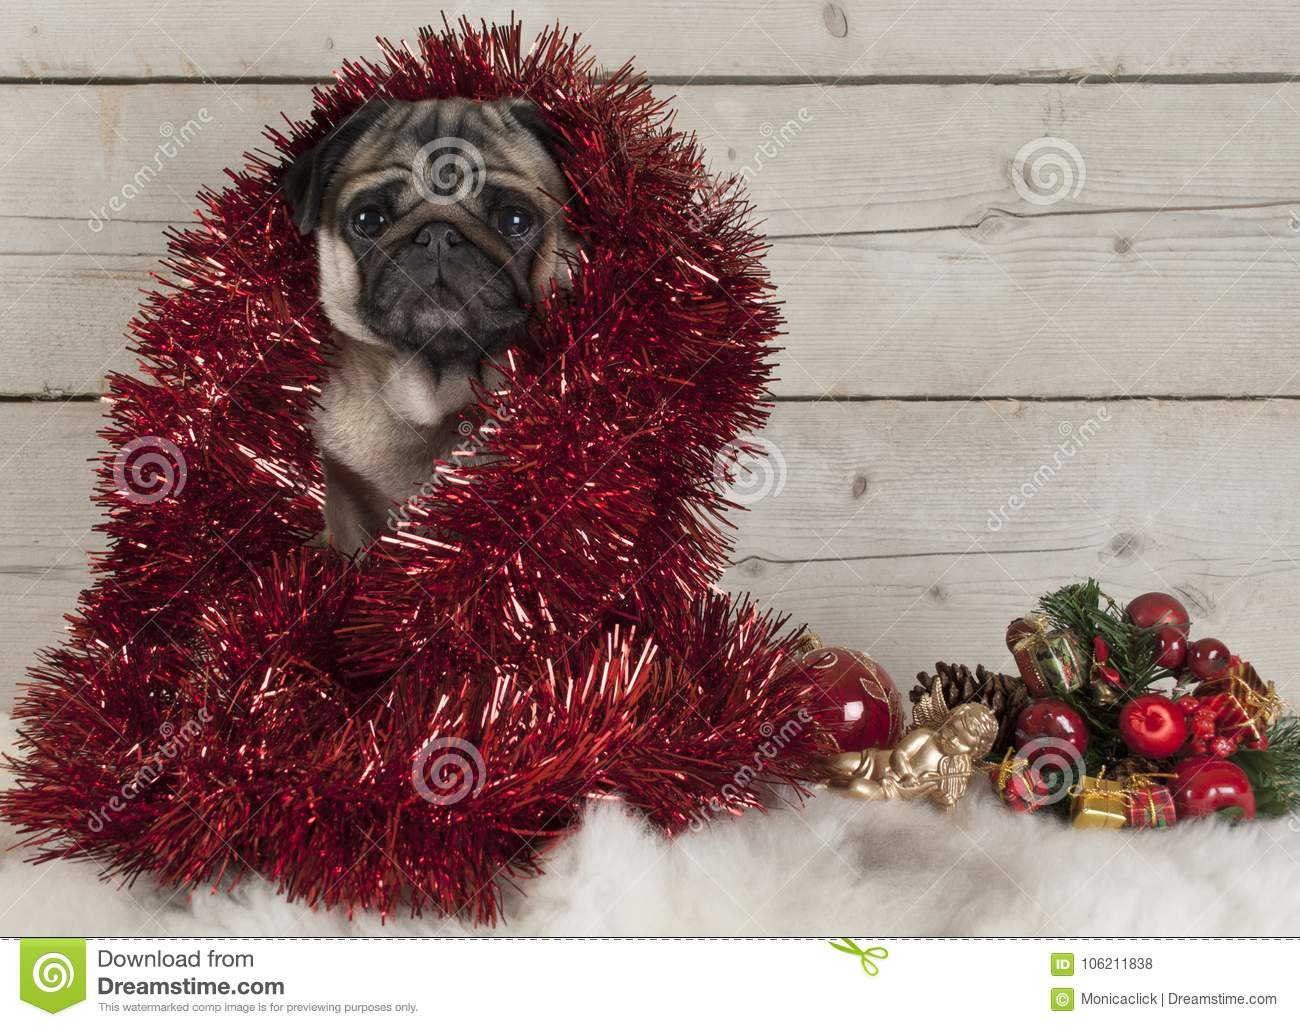 Cute Christmas Pug Puppy Dog Decorated With Tinsel Sitting Down On